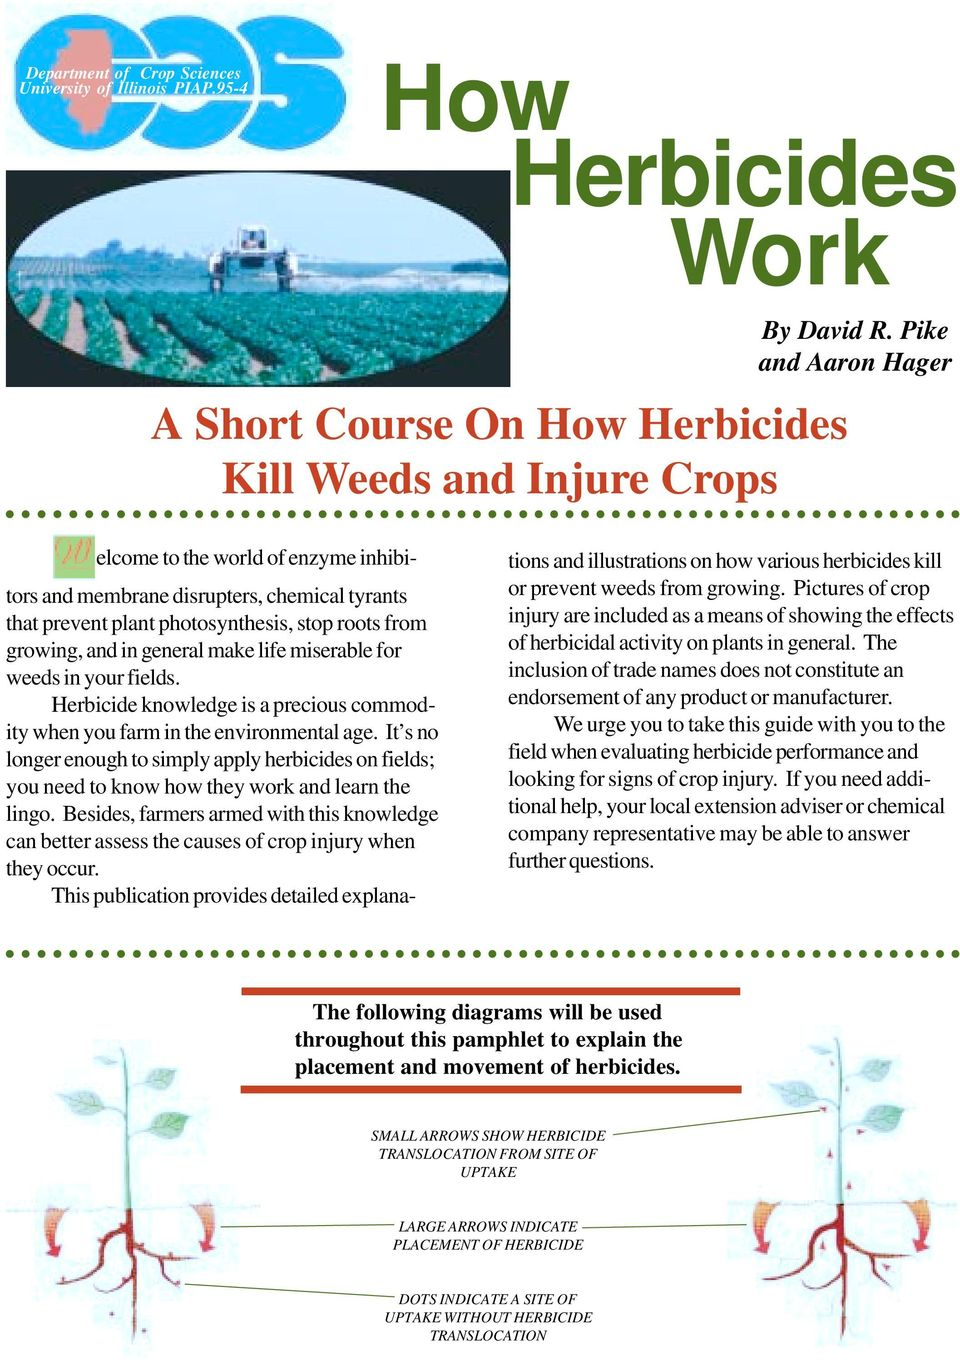 for weeds in your fields. Herbicide knowledge is a precious commodity when you farm in the environmental age.